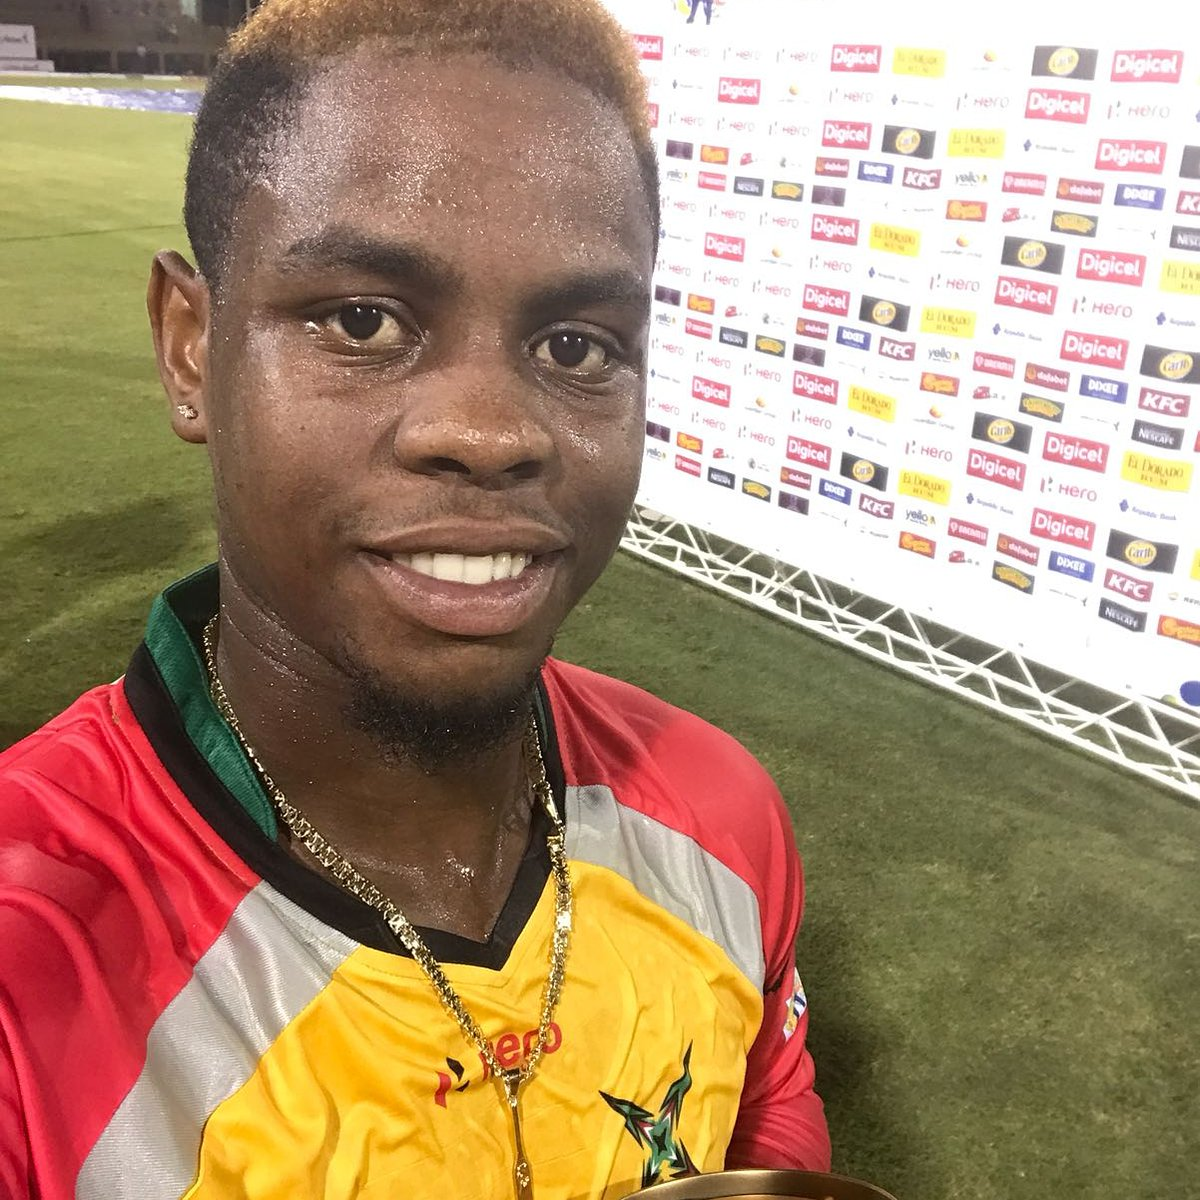 Hetmyer poses after his match-winning 79 not out off 45 balls (Photo courtesy www.cplt20.com)